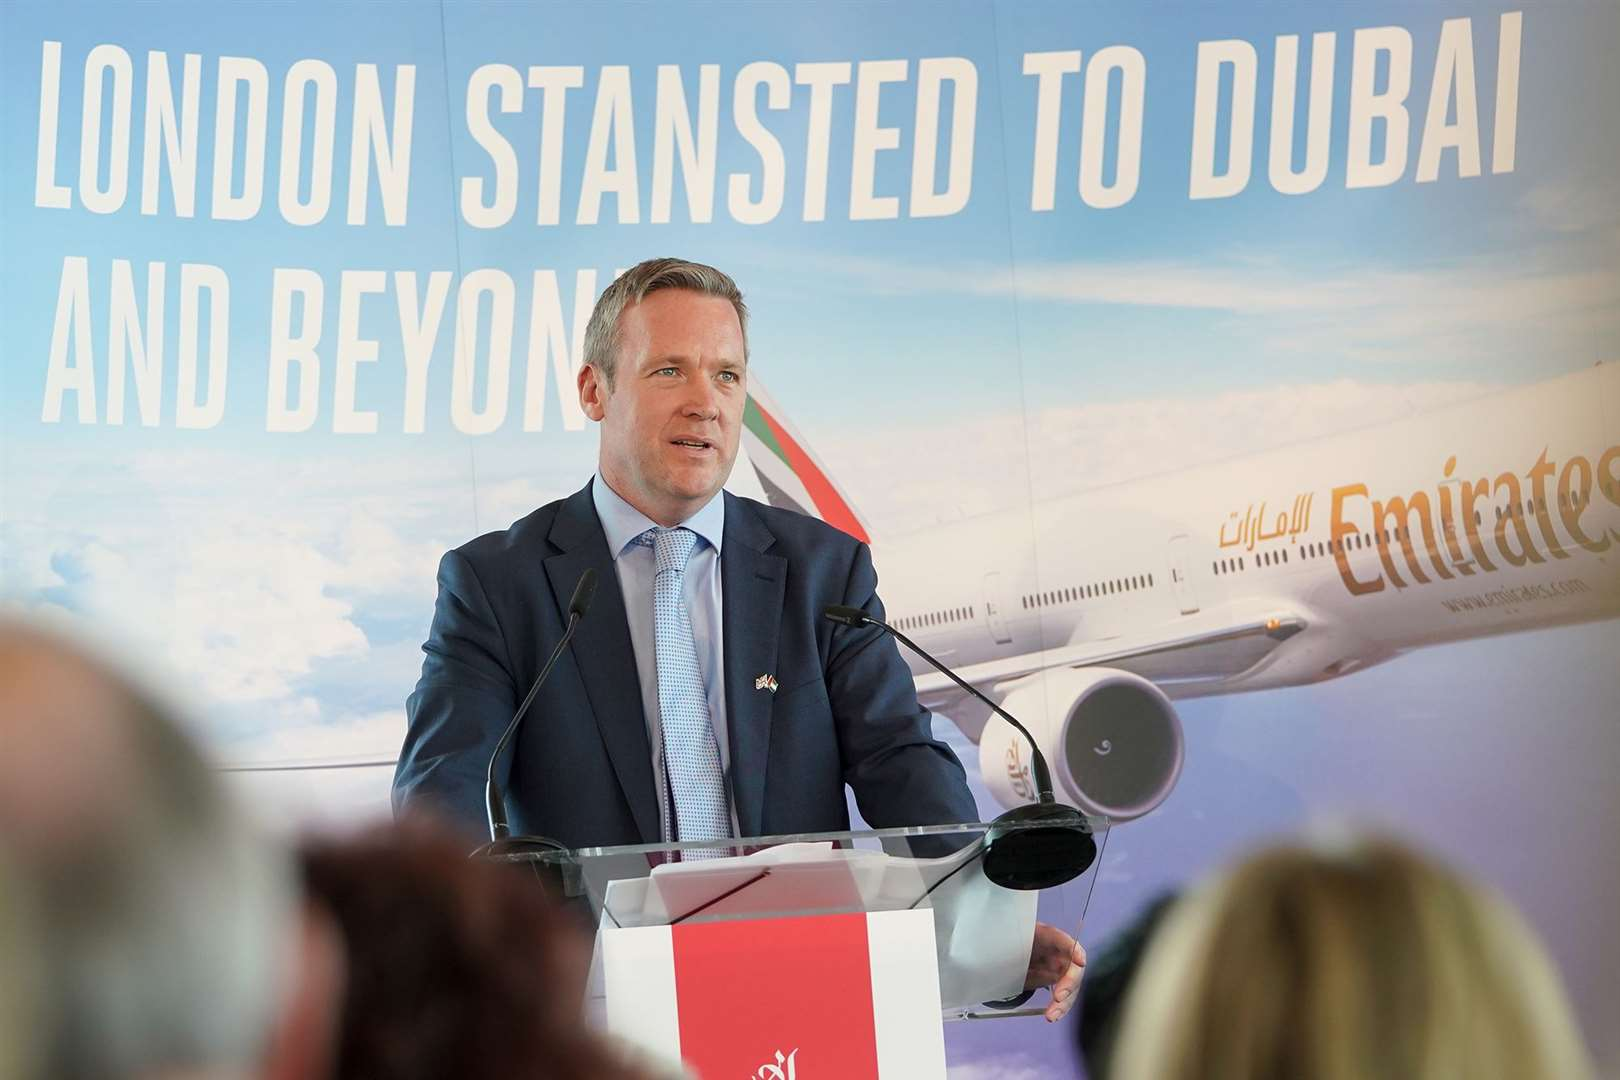 Ken O'Toole at the first Emirates flight launch in June 2018 (26385300)